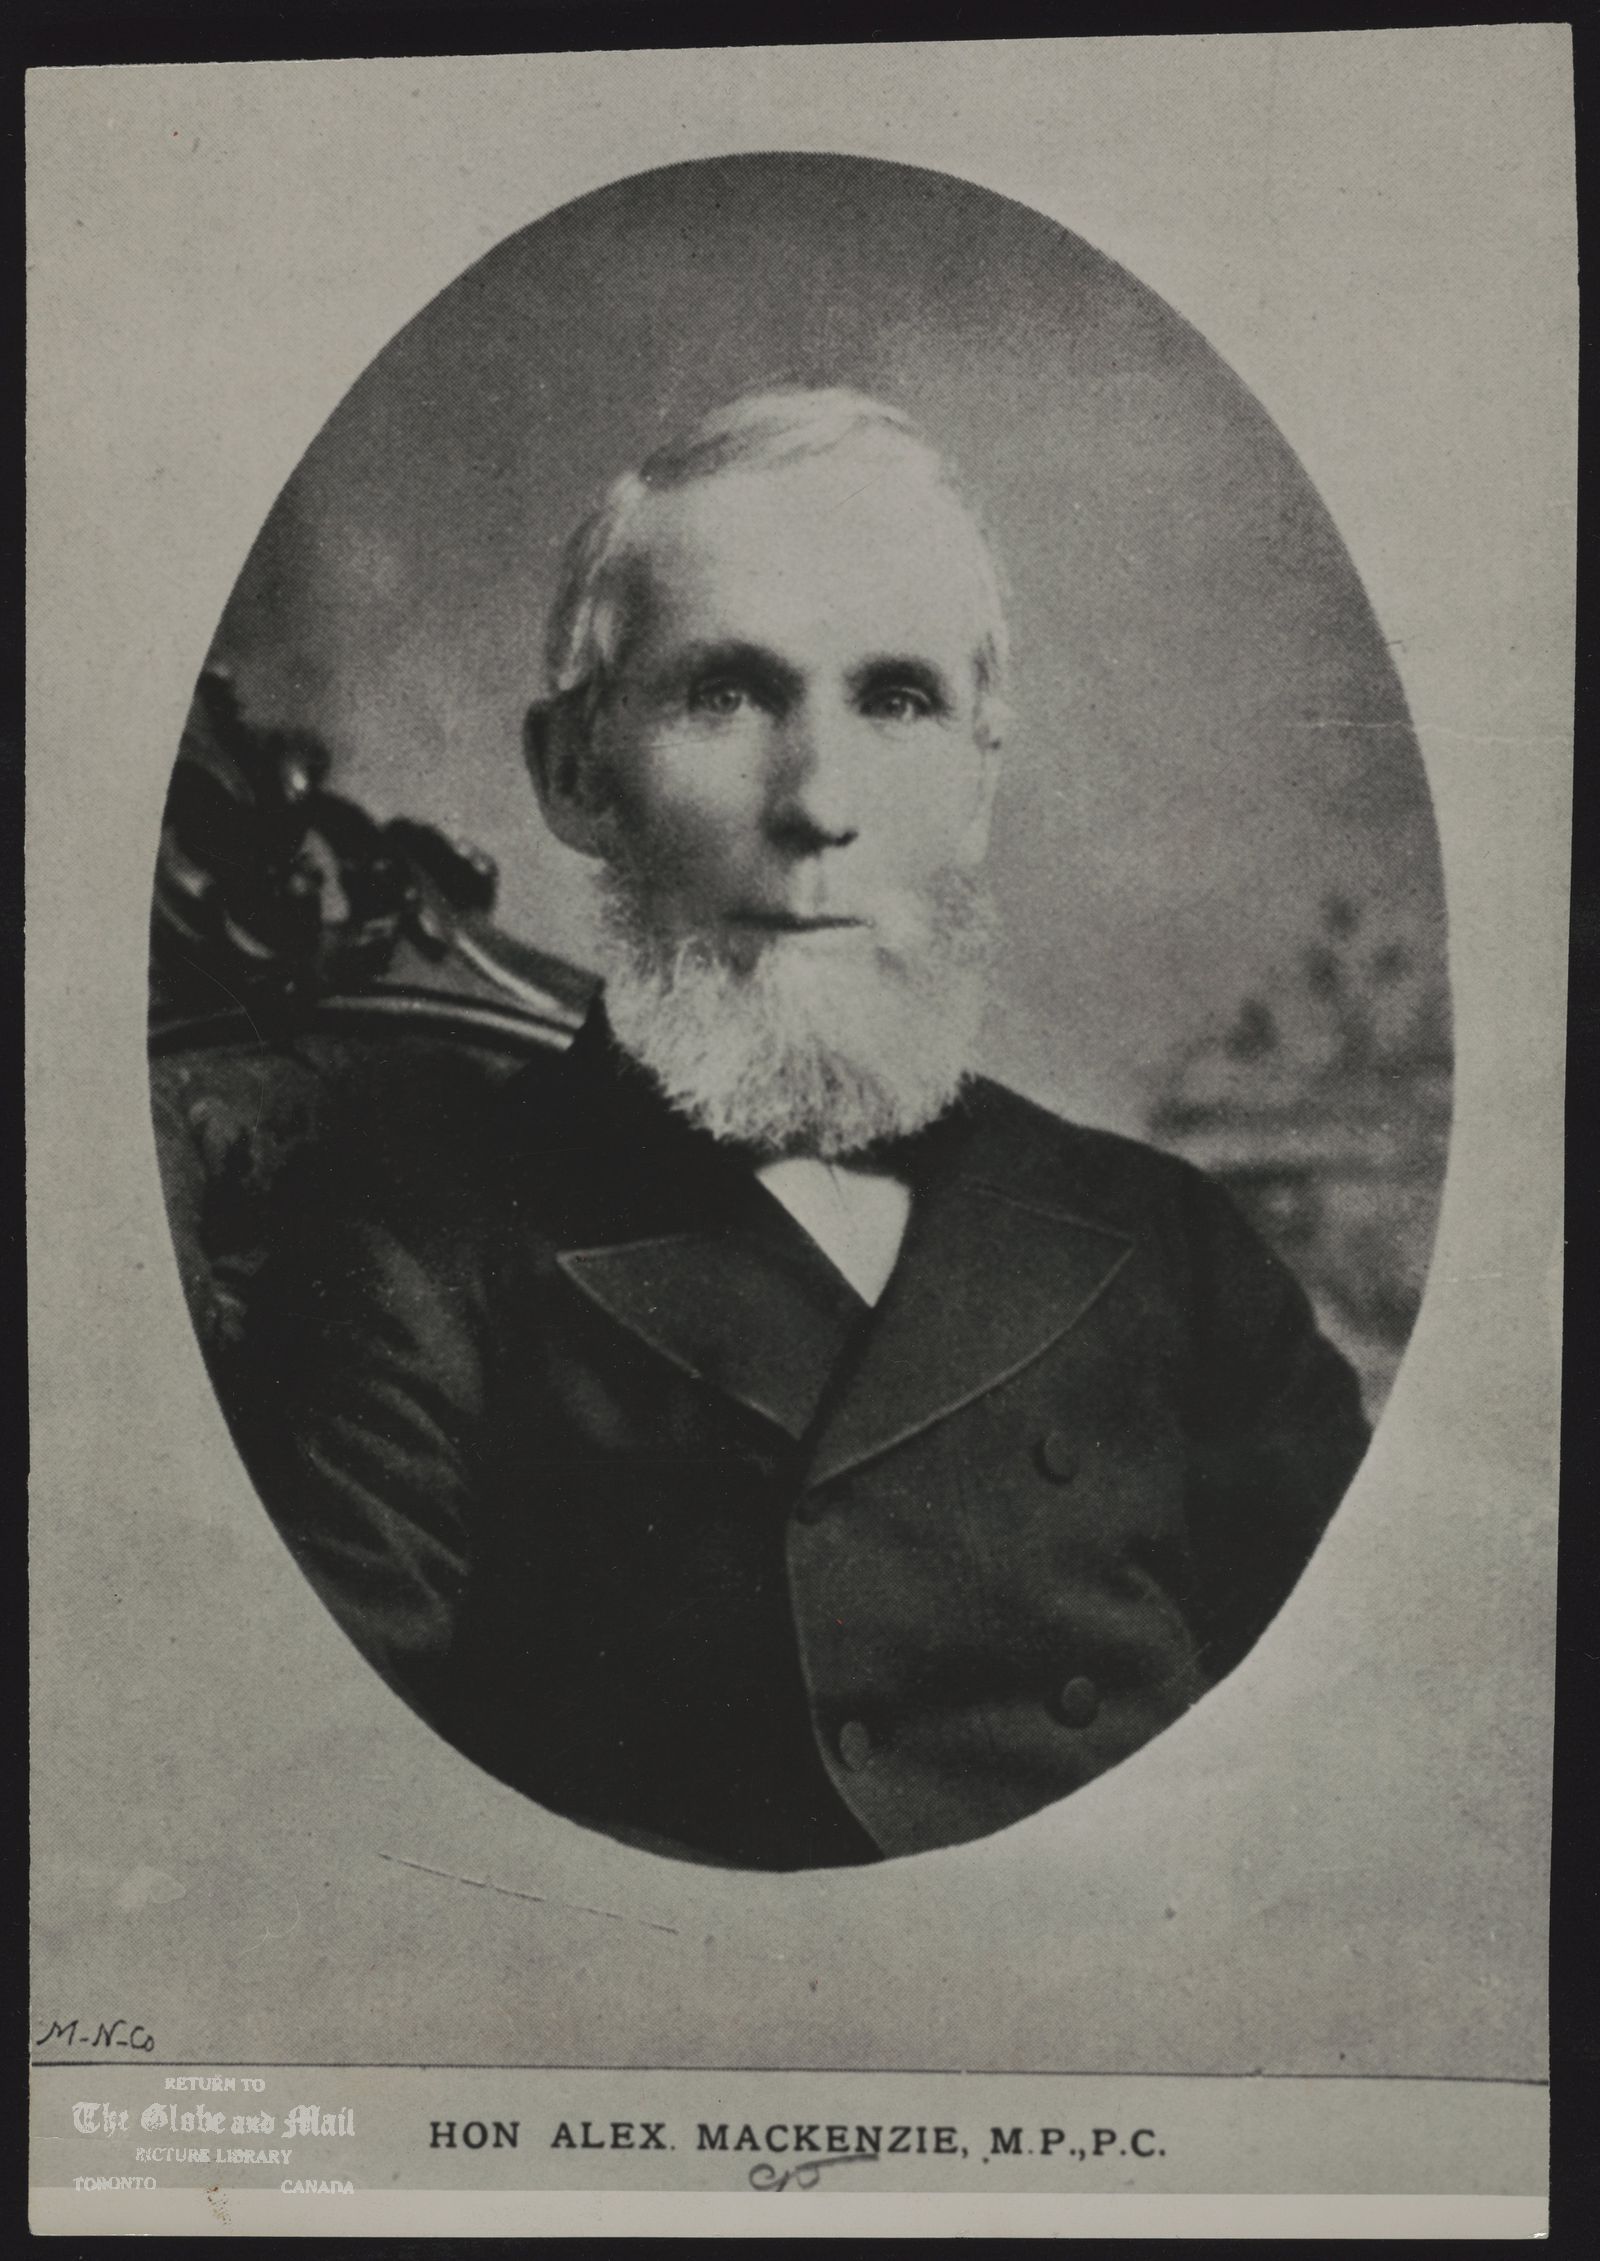 The notes transcribed from the back of this photograph are as follows: ALEXANDER MACKENZIE Historical Former Prime Minister of Canada HON ALEX MACKENZIE, M.P., P.C. circa 1875